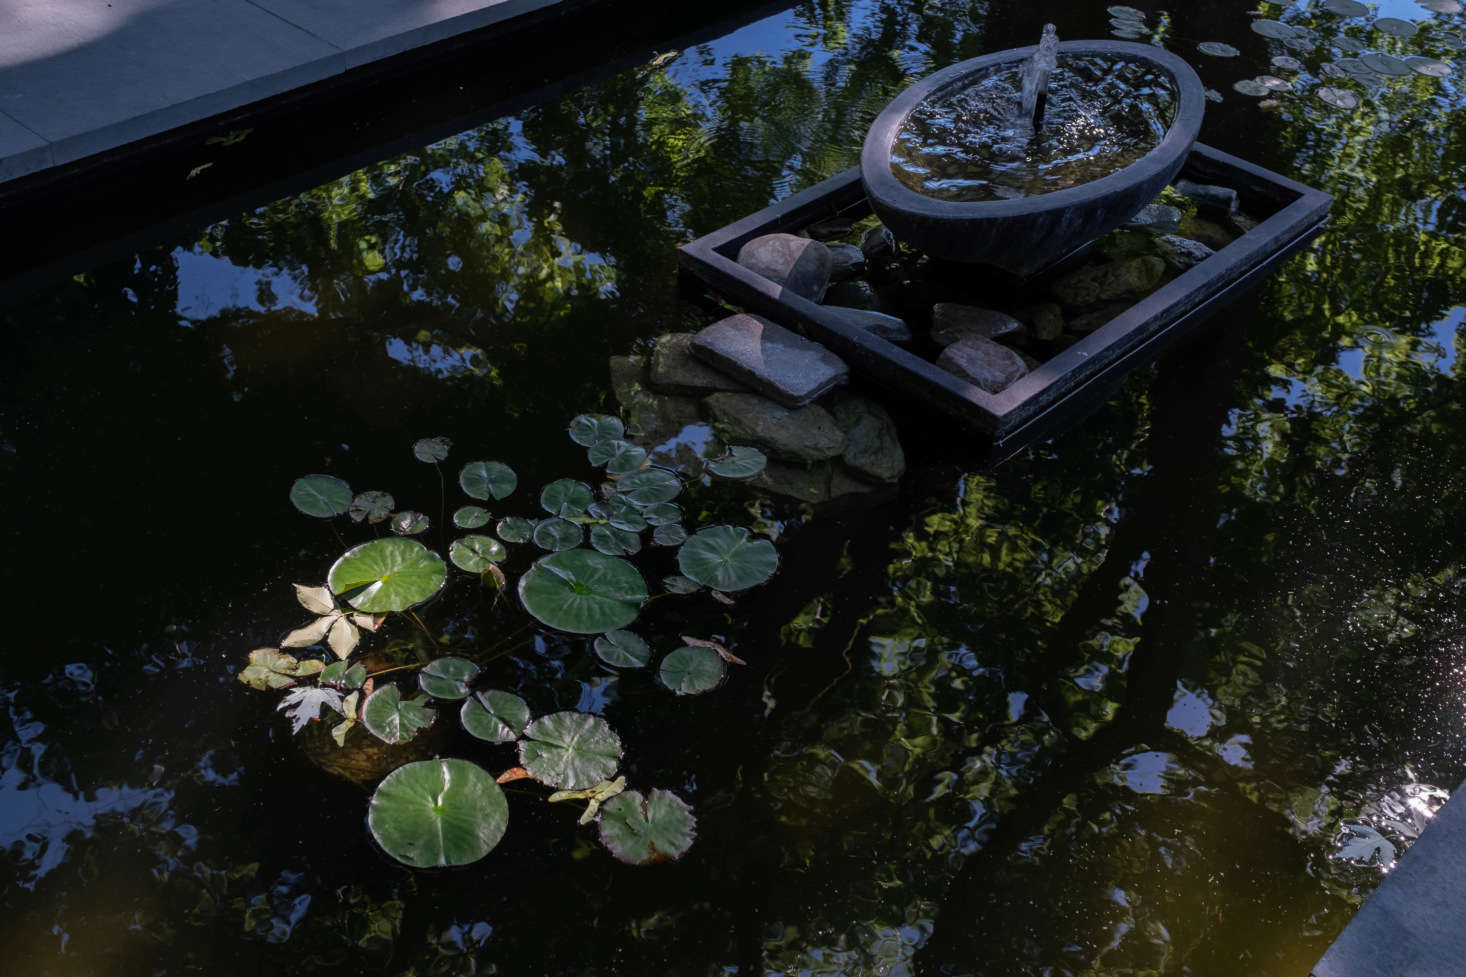 The shallow pool, with lily pads, is home to the couple&#8